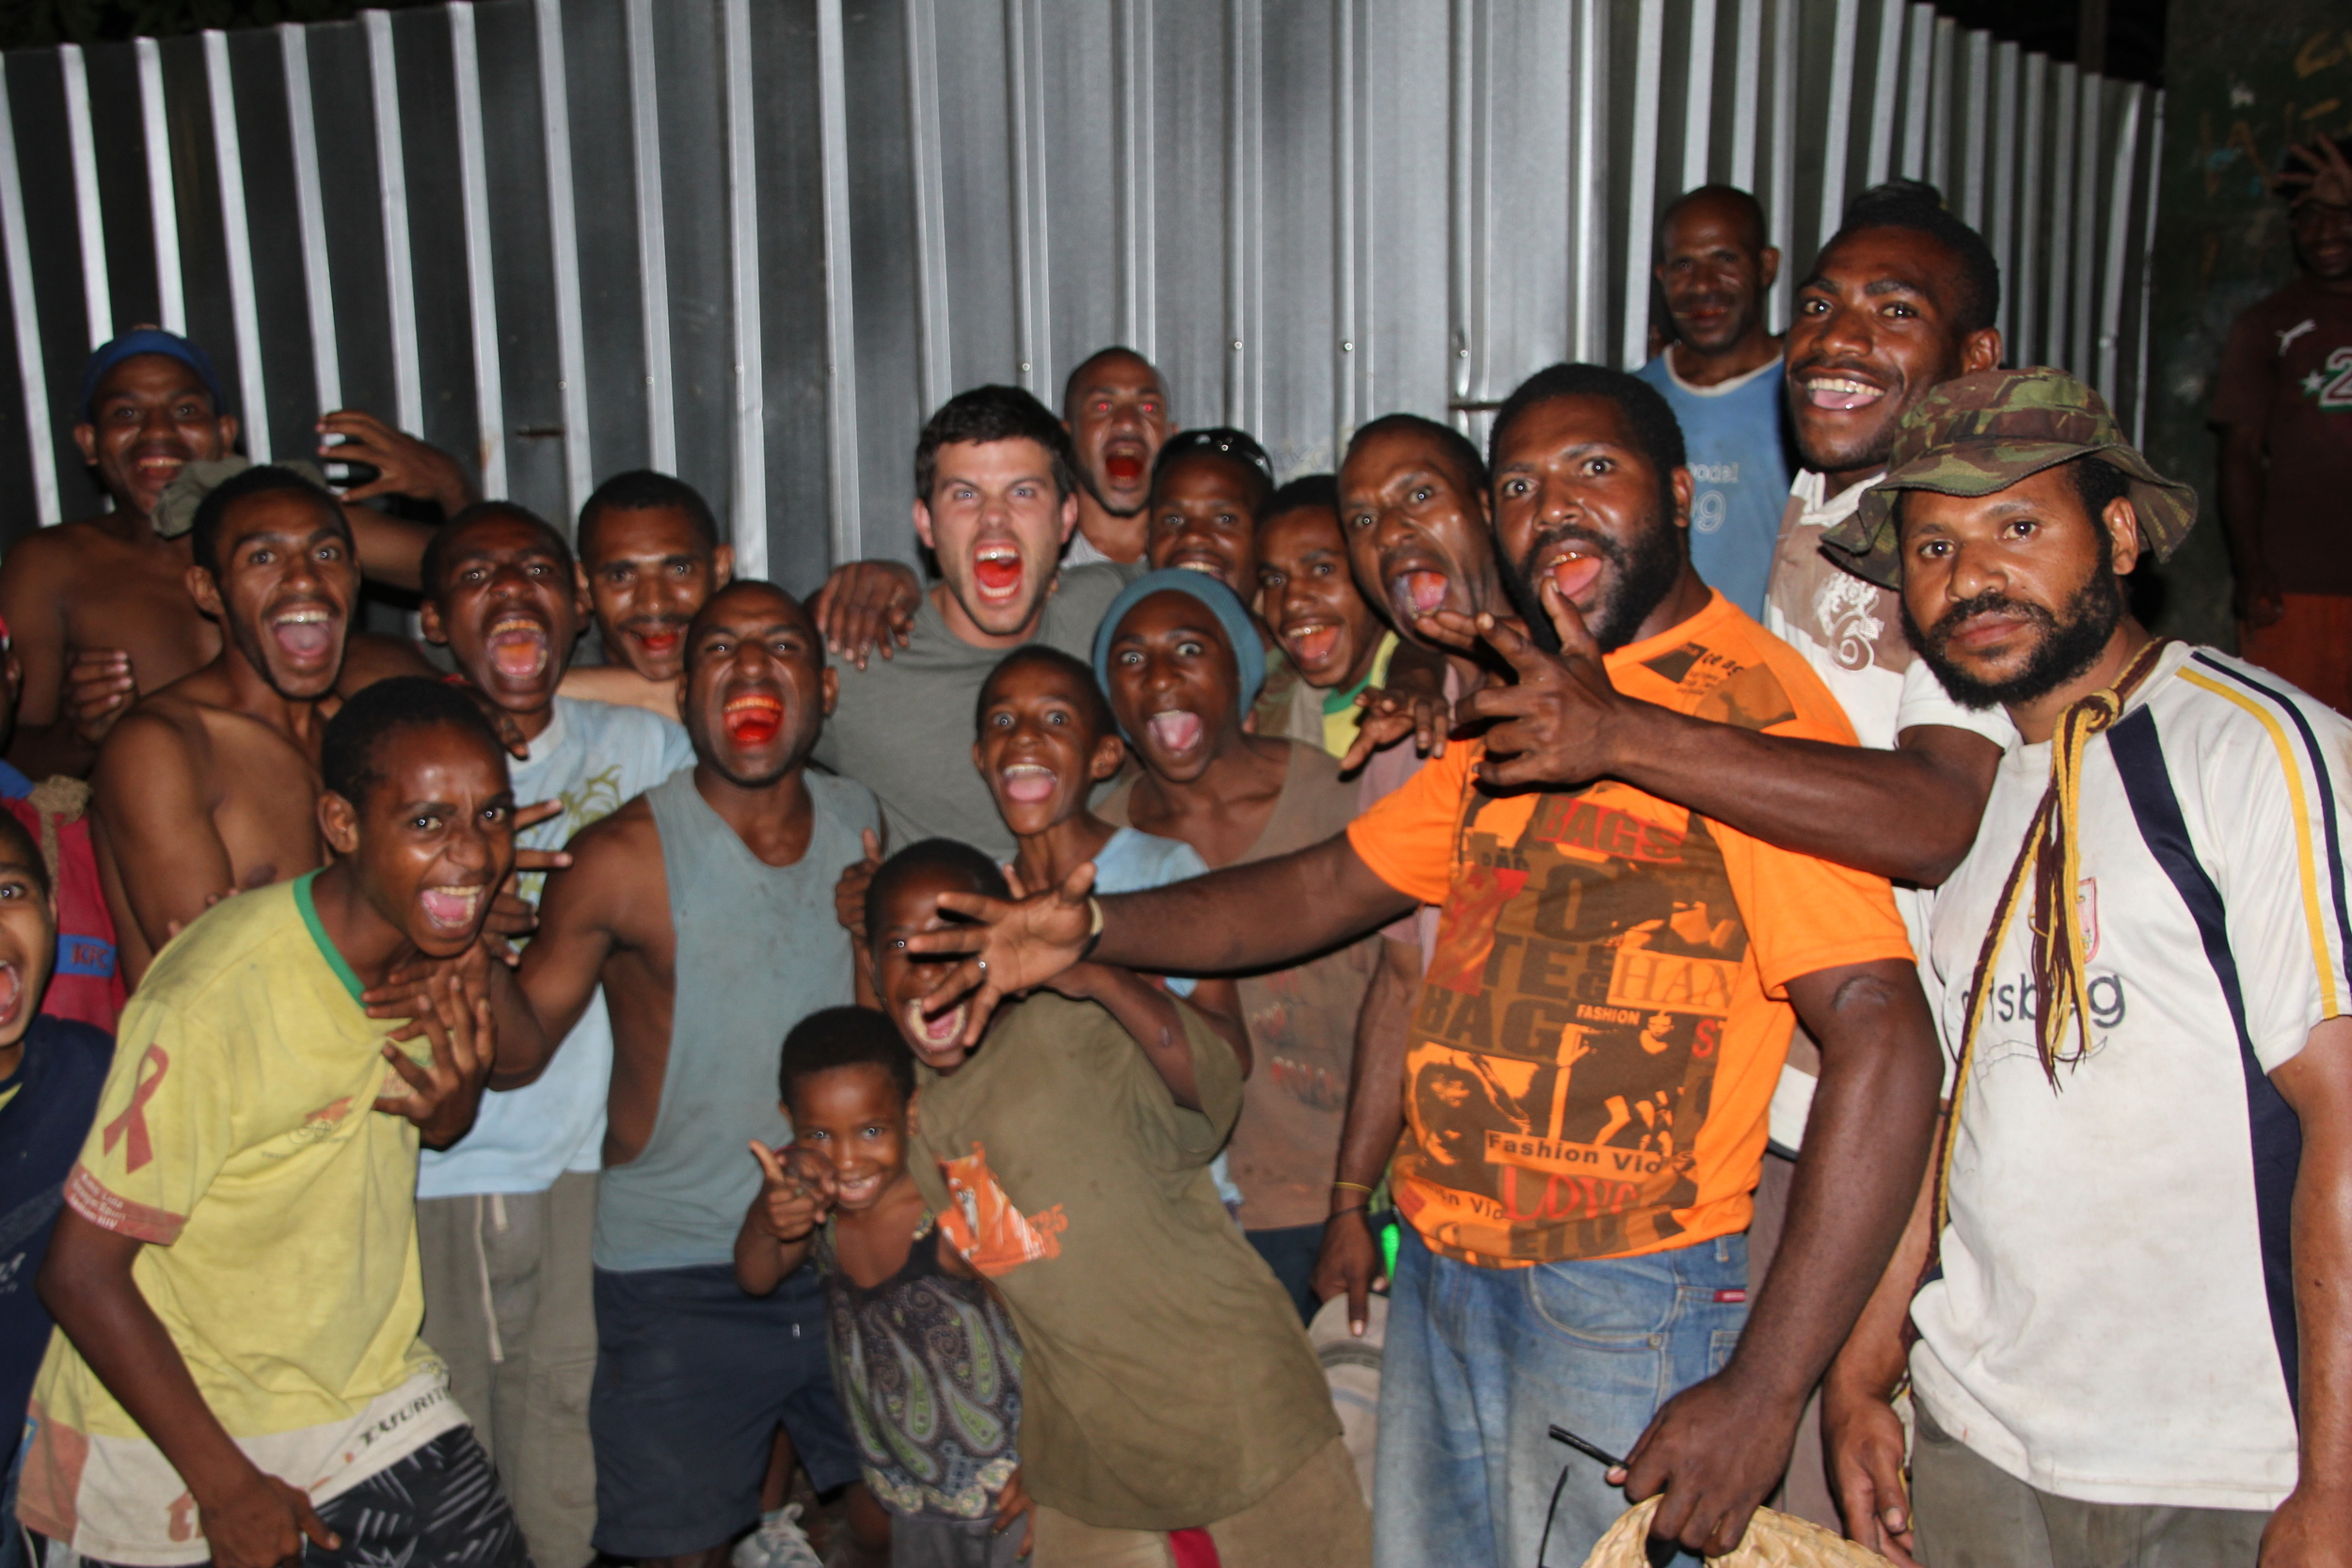 Eric Hill chewing betel nut with locals from the infamous Erema 'Candlelight City' in Port Moresby